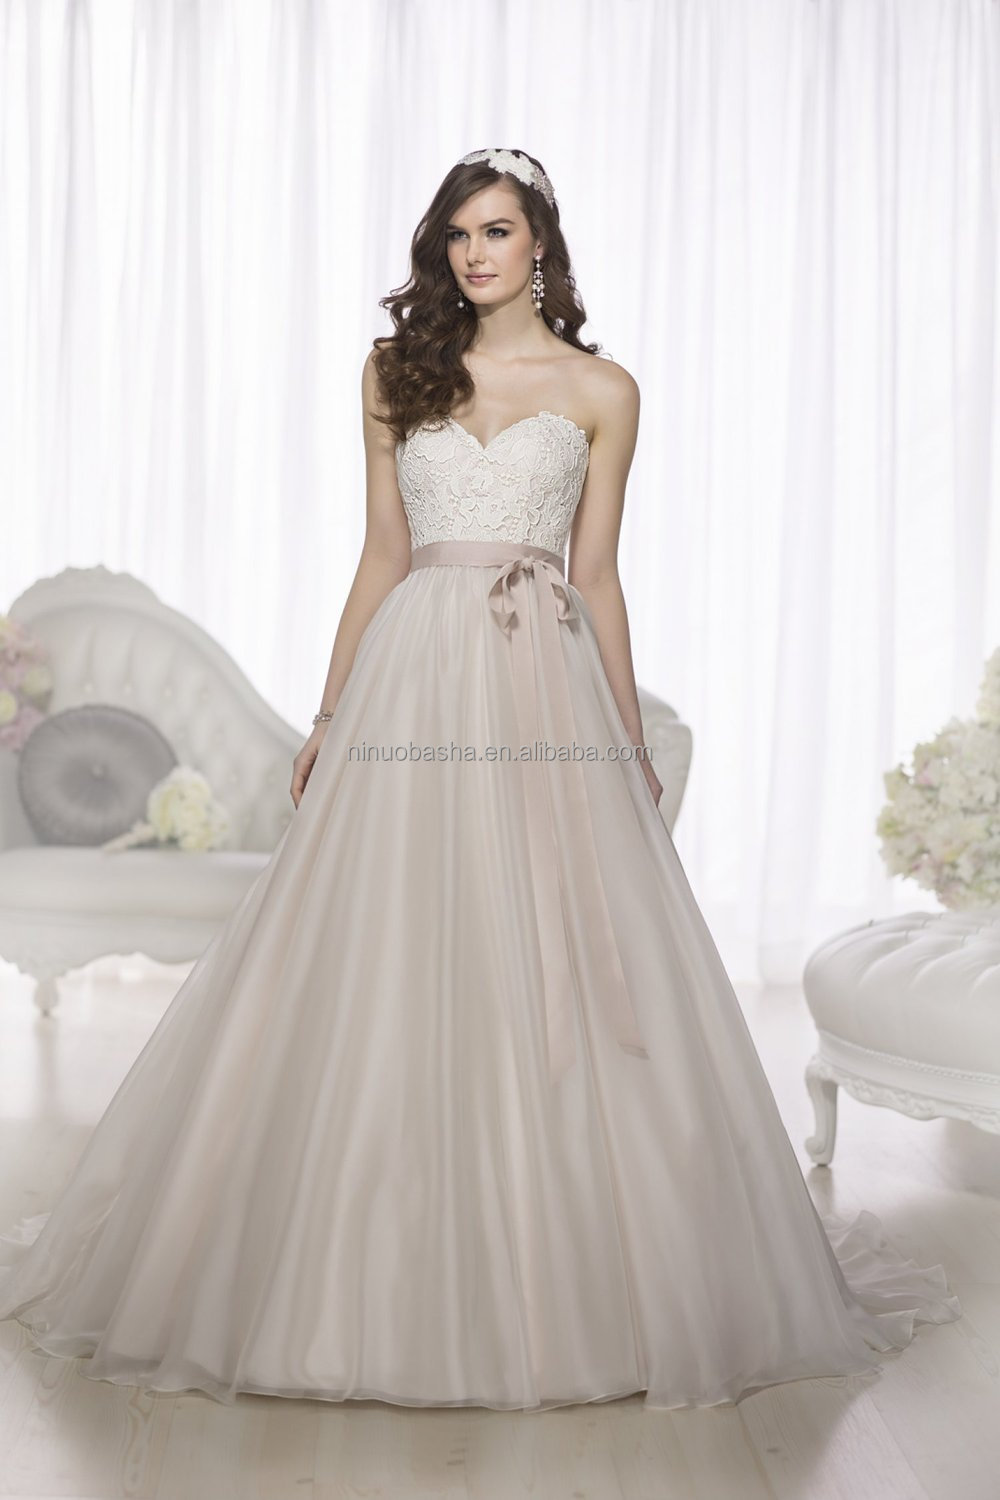 Simple 2015 Ball Gown Wedding Dress Sweetheart Long Tail Lace ...